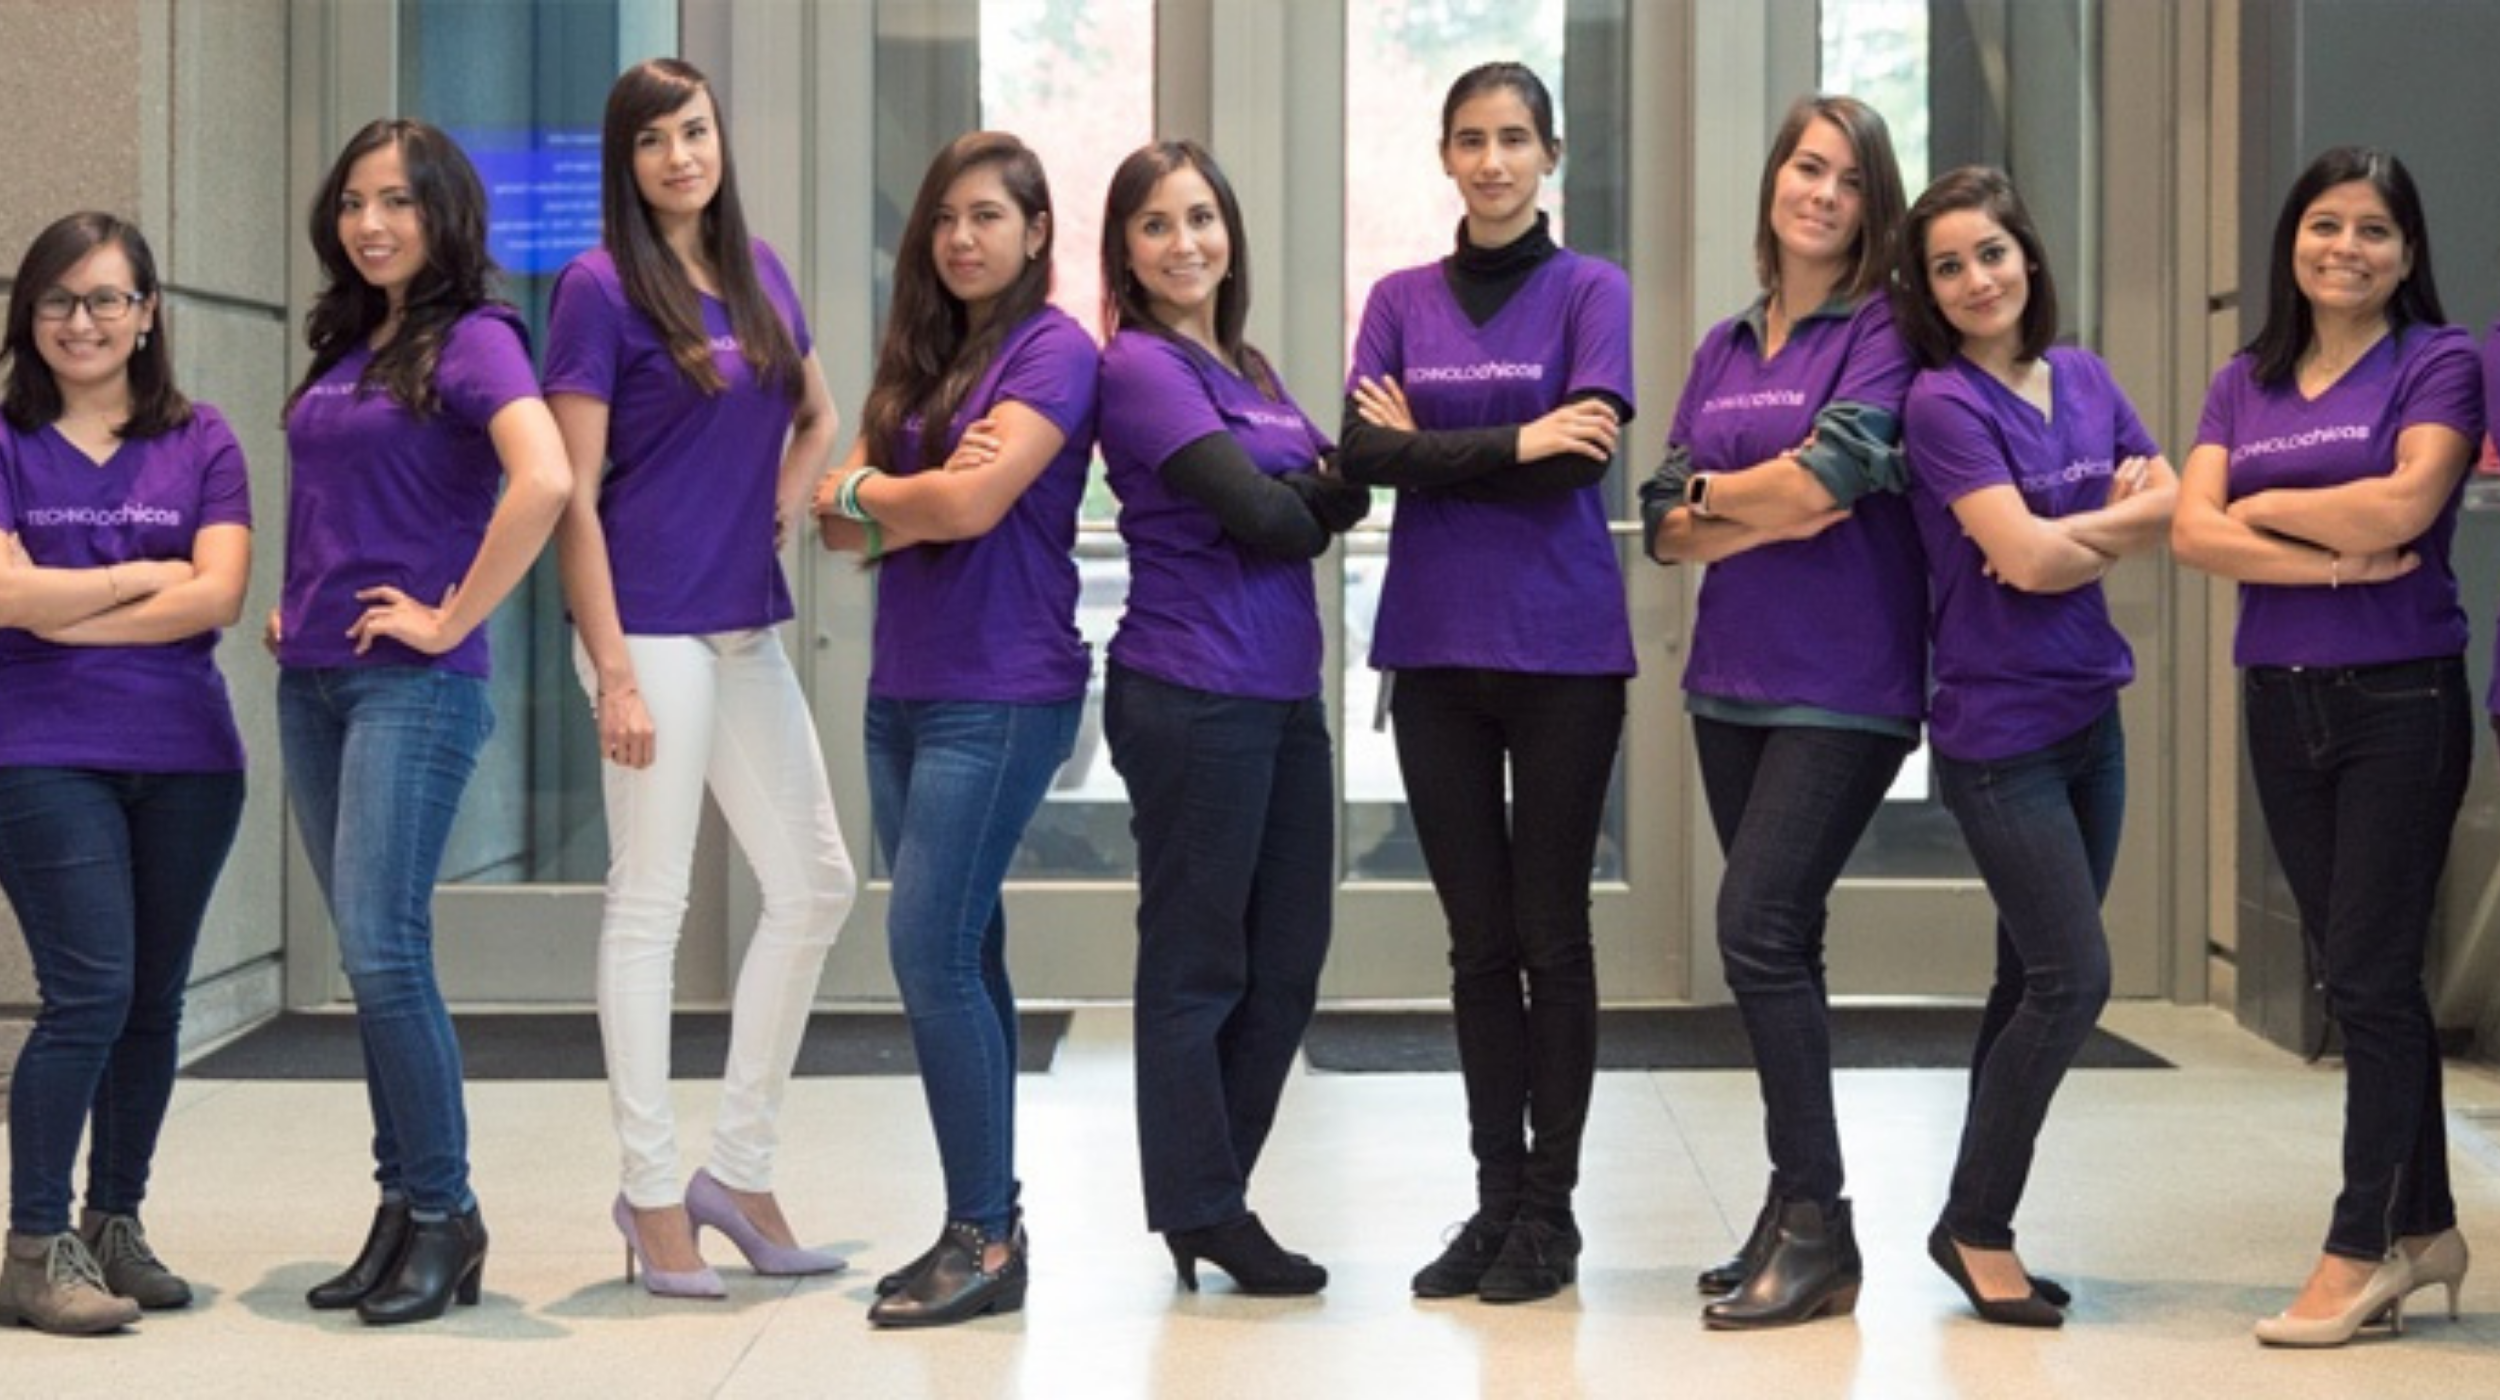 women in tech (group of young women in purple shirts post for photo)